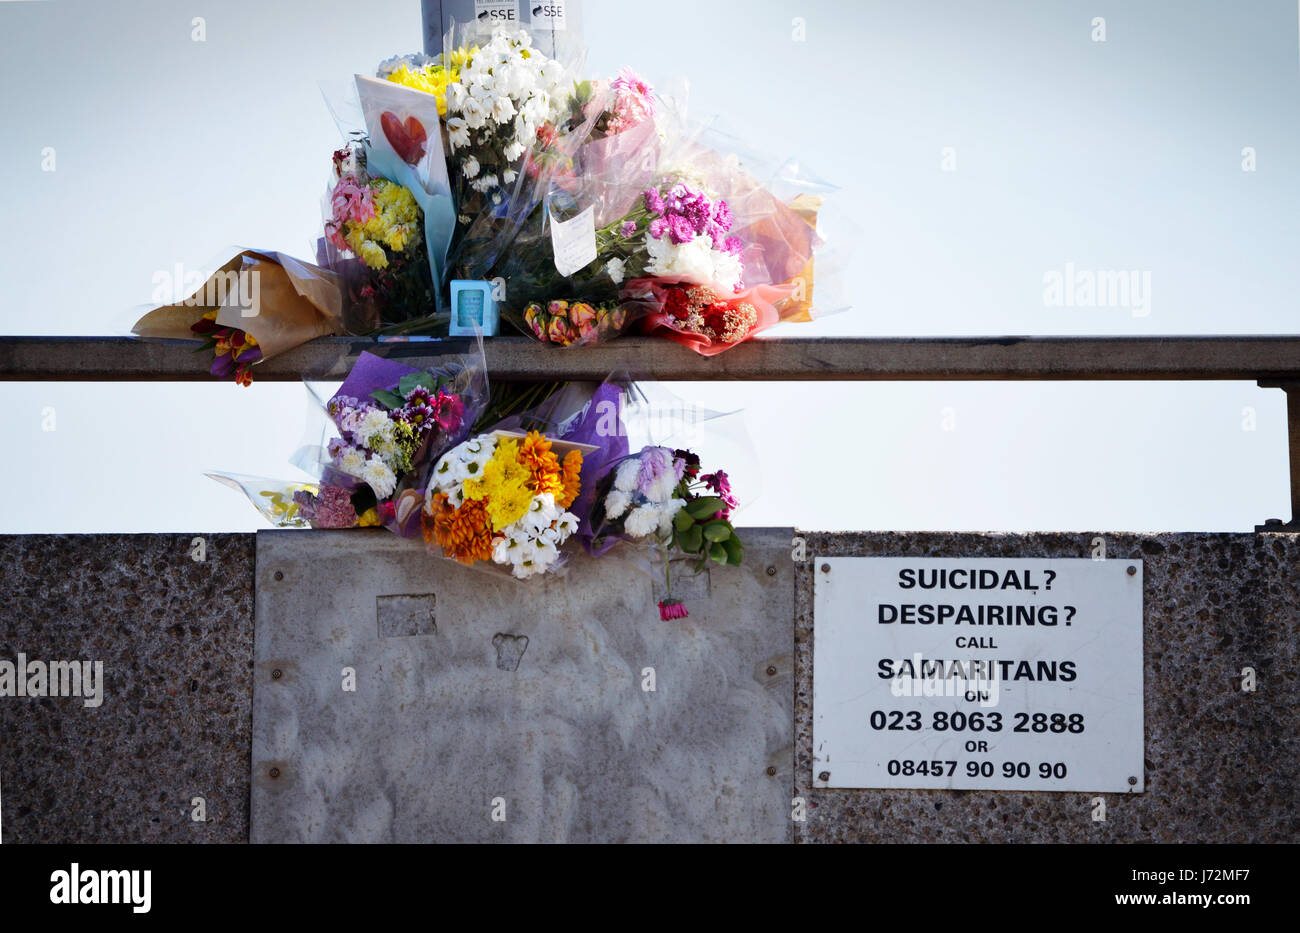 Floral tributes laid in memory of a suicide victim on Itchen bridge in Southampton, UK, with the Samaritans helpline Stock Photo